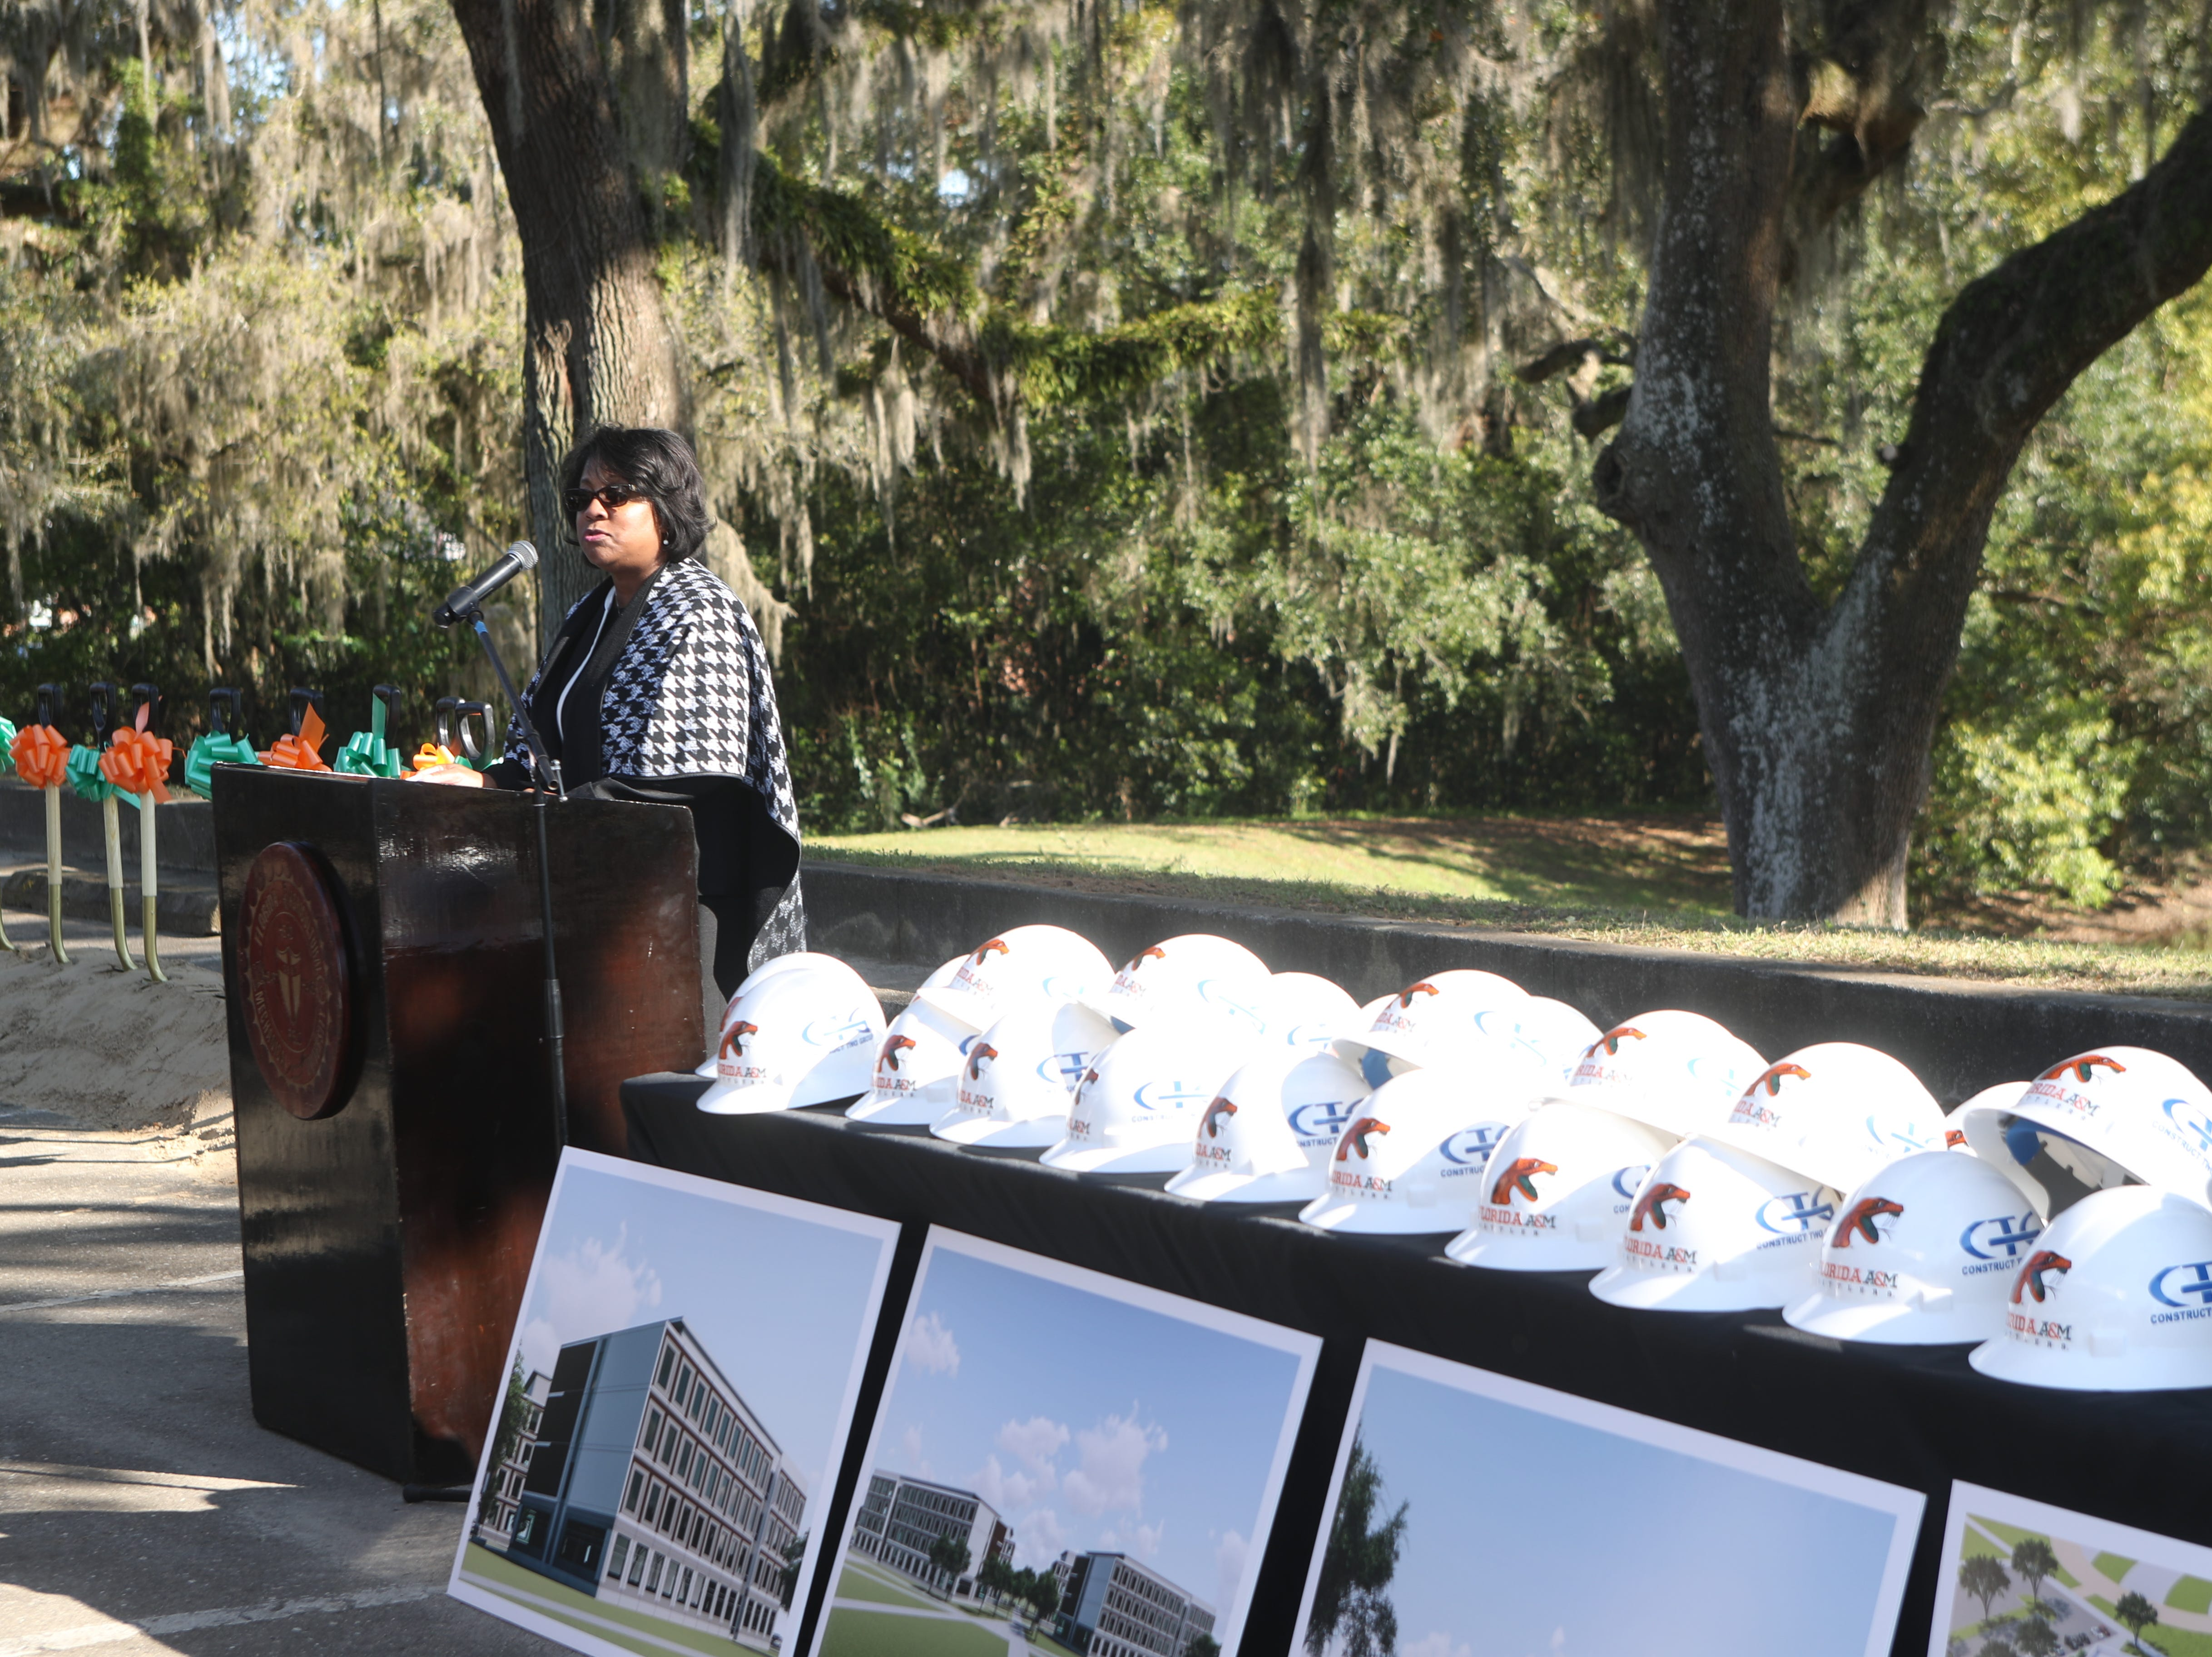 Florida A&M Vice President for Finance and Administration Wanda Ford speaks during a groundbreaking celebration for a new residence hall on the Florida A&M campus Wednesday, March 6, 2019.